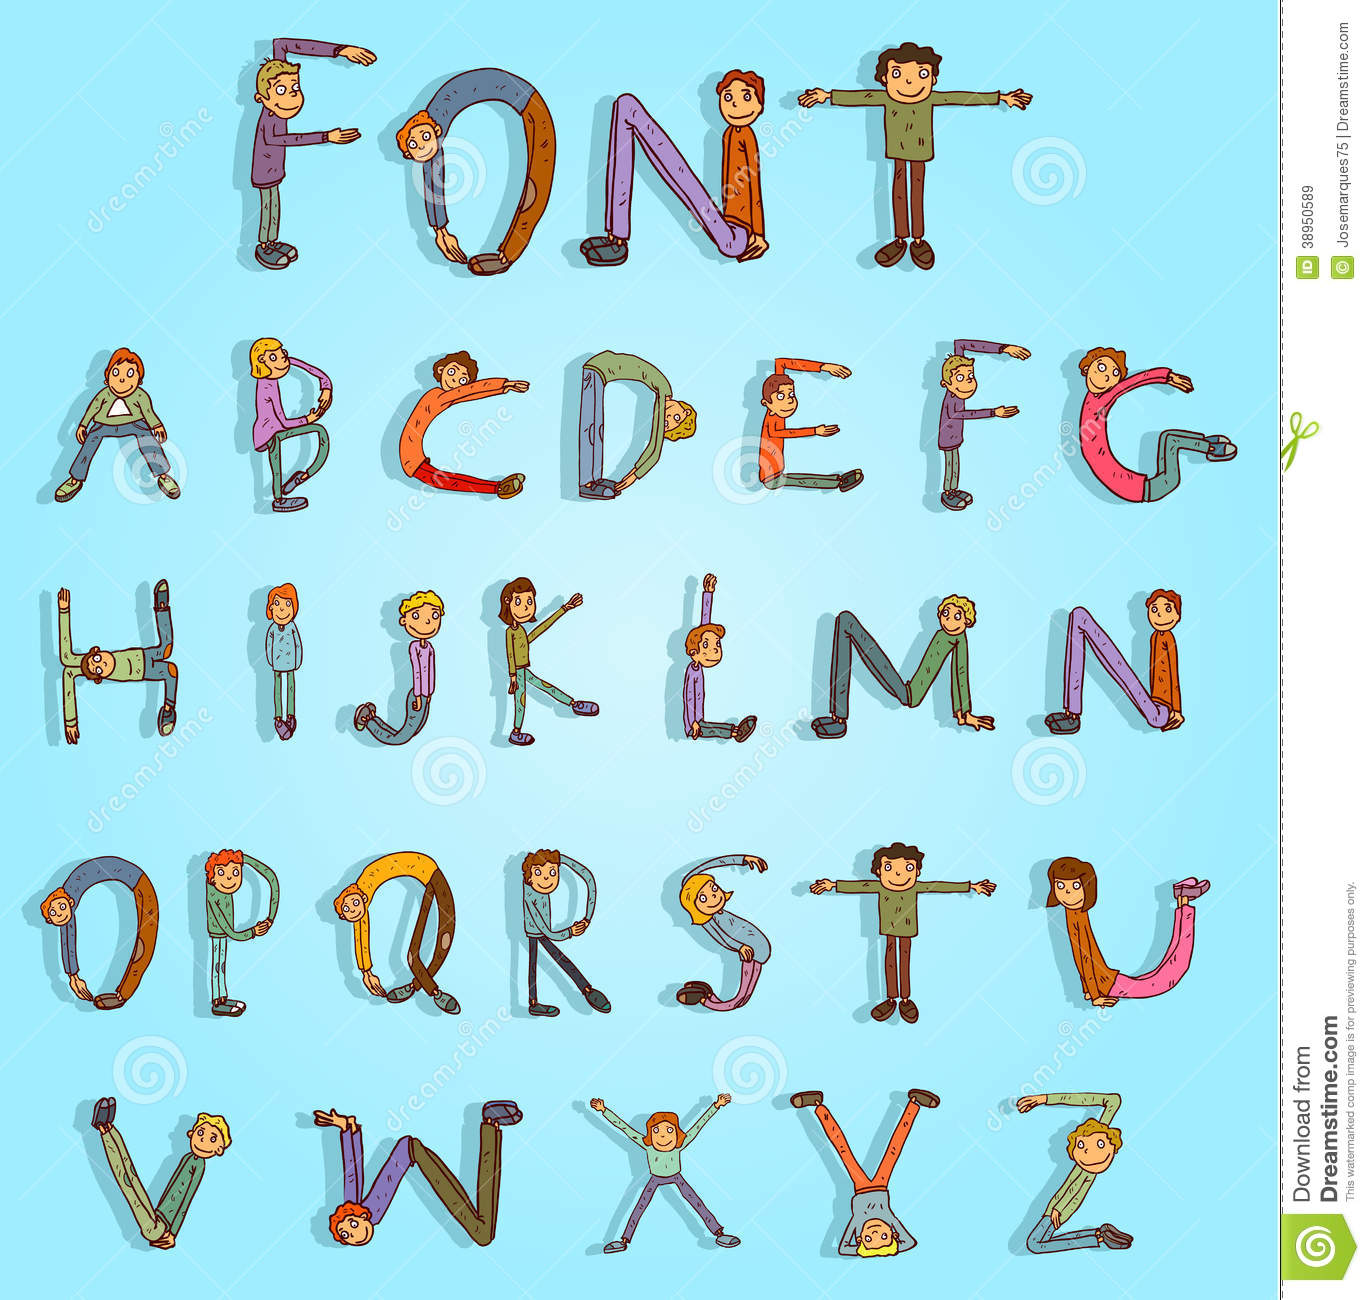 how to add fonts to vectr